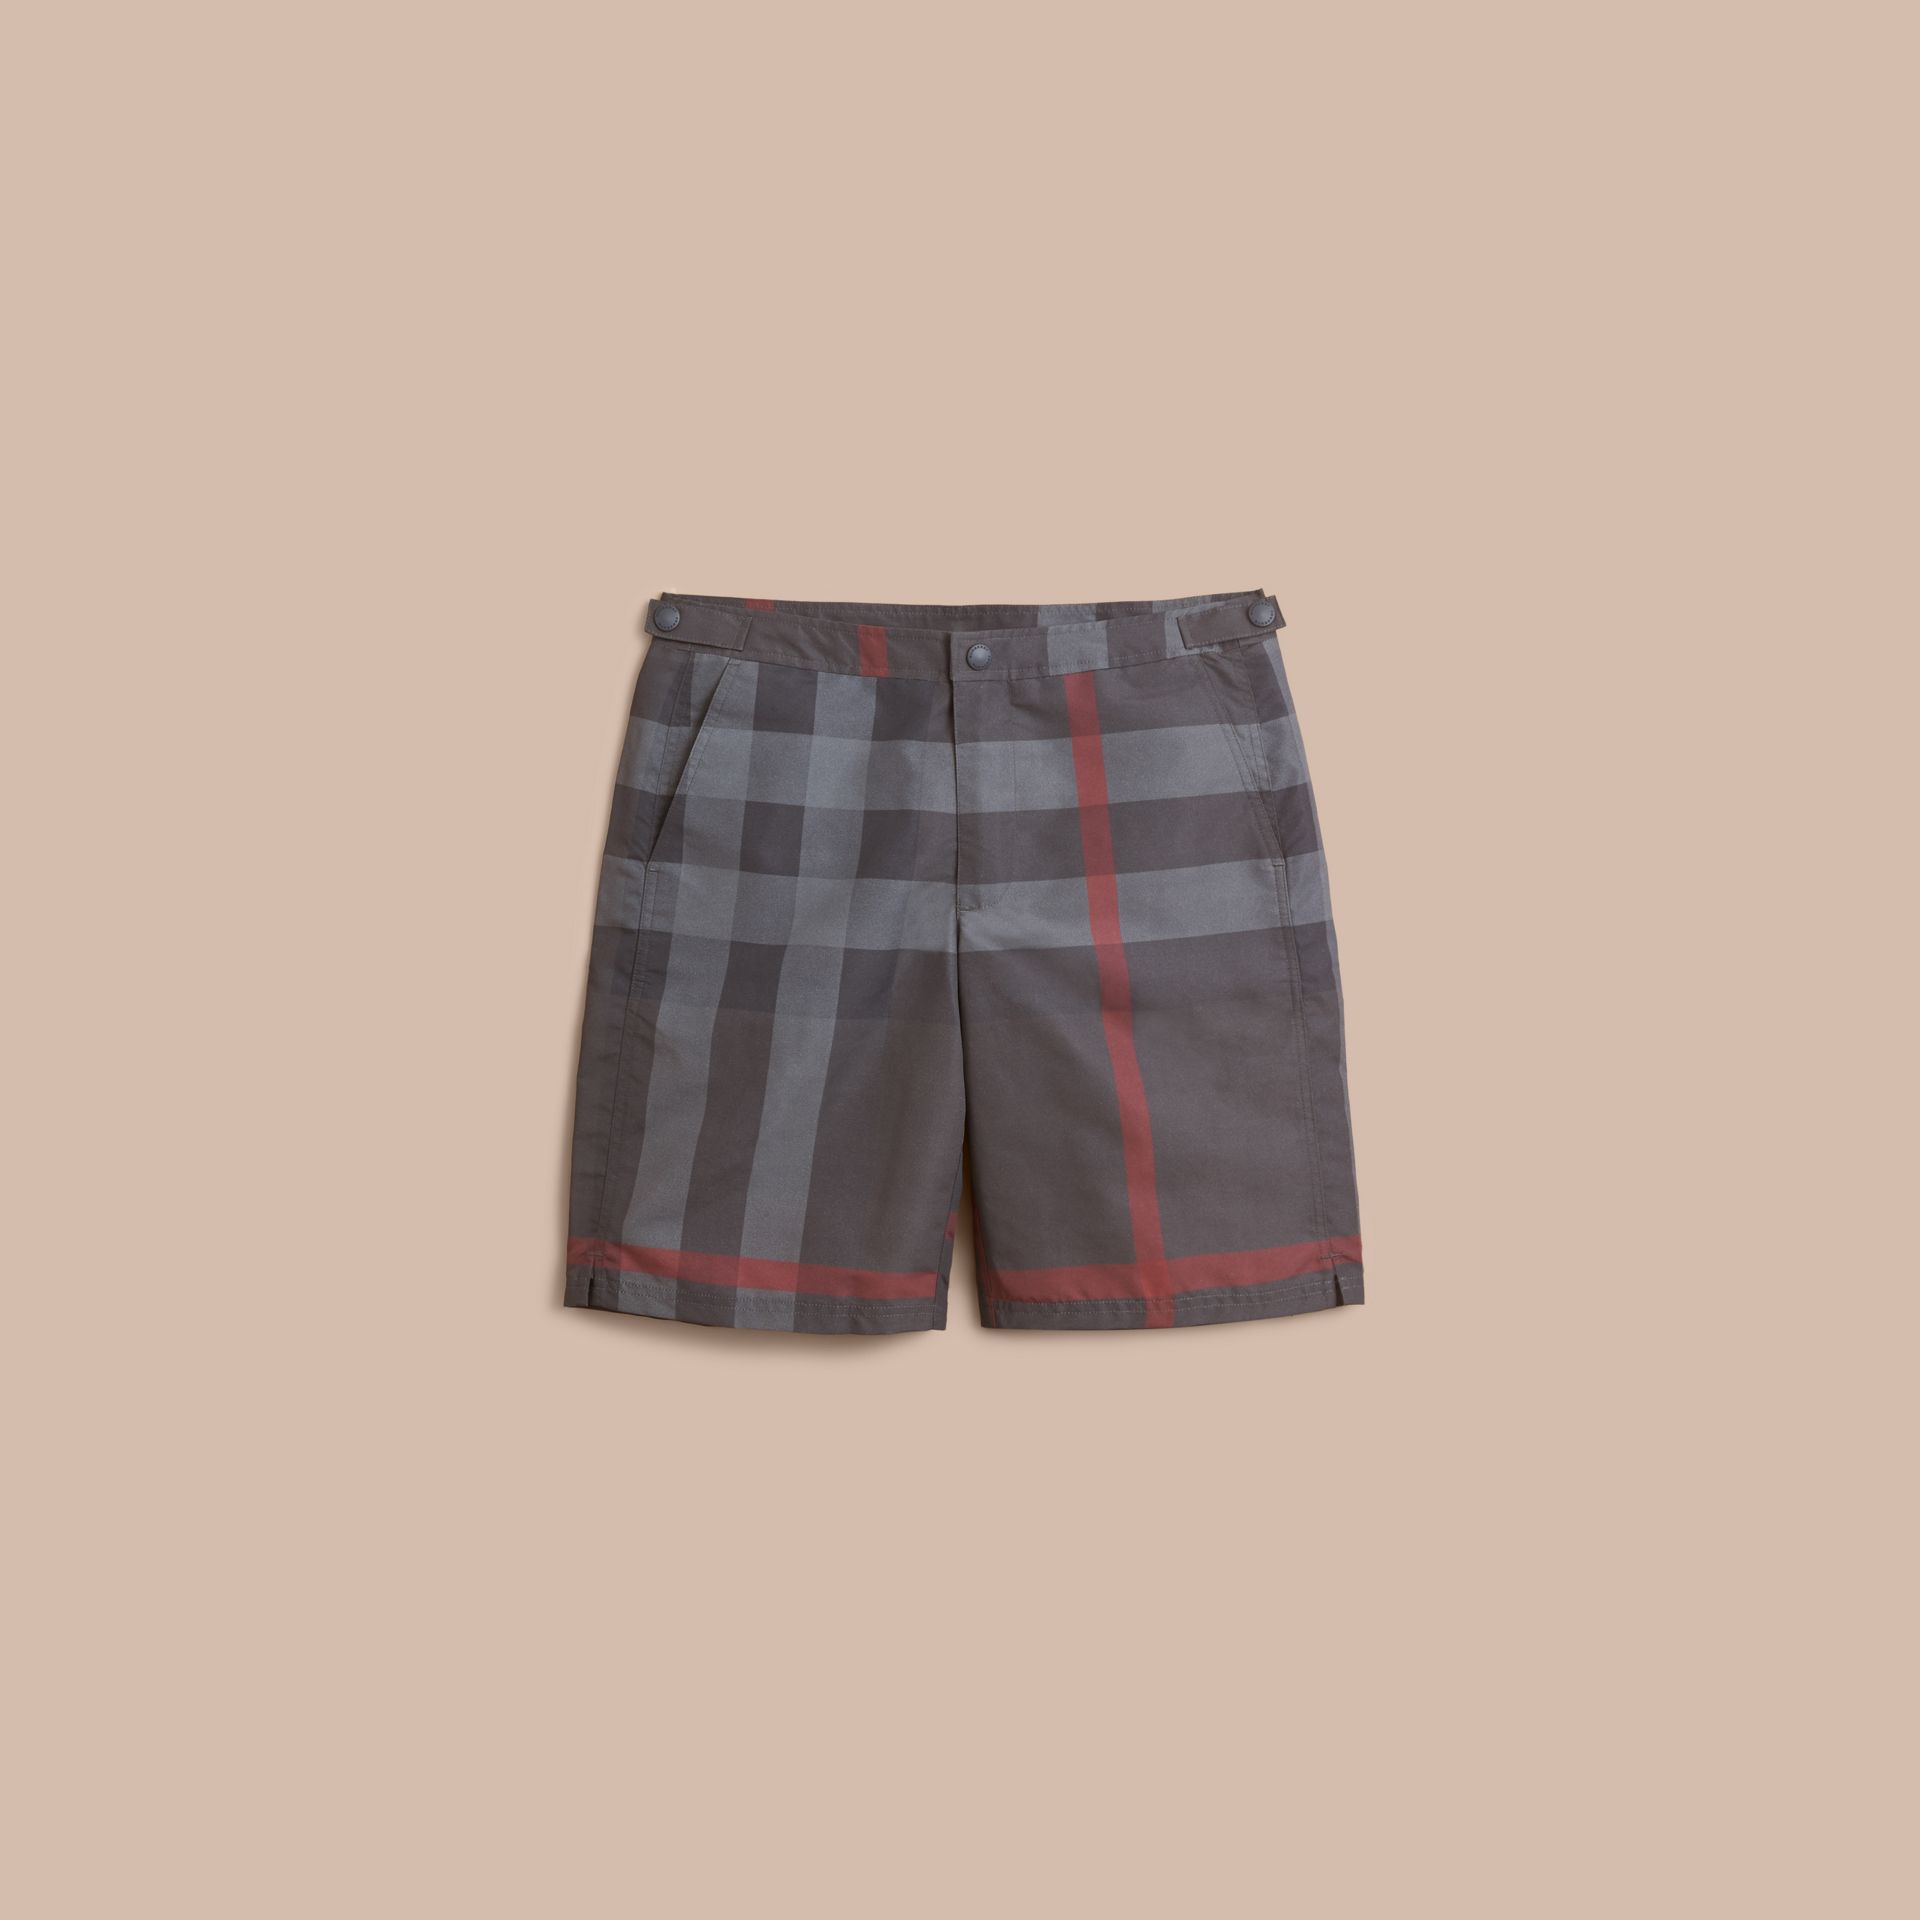 Tailored Check Technical Swim Shorts in Dark Charcoal - Men | Burberry - gallery image 1